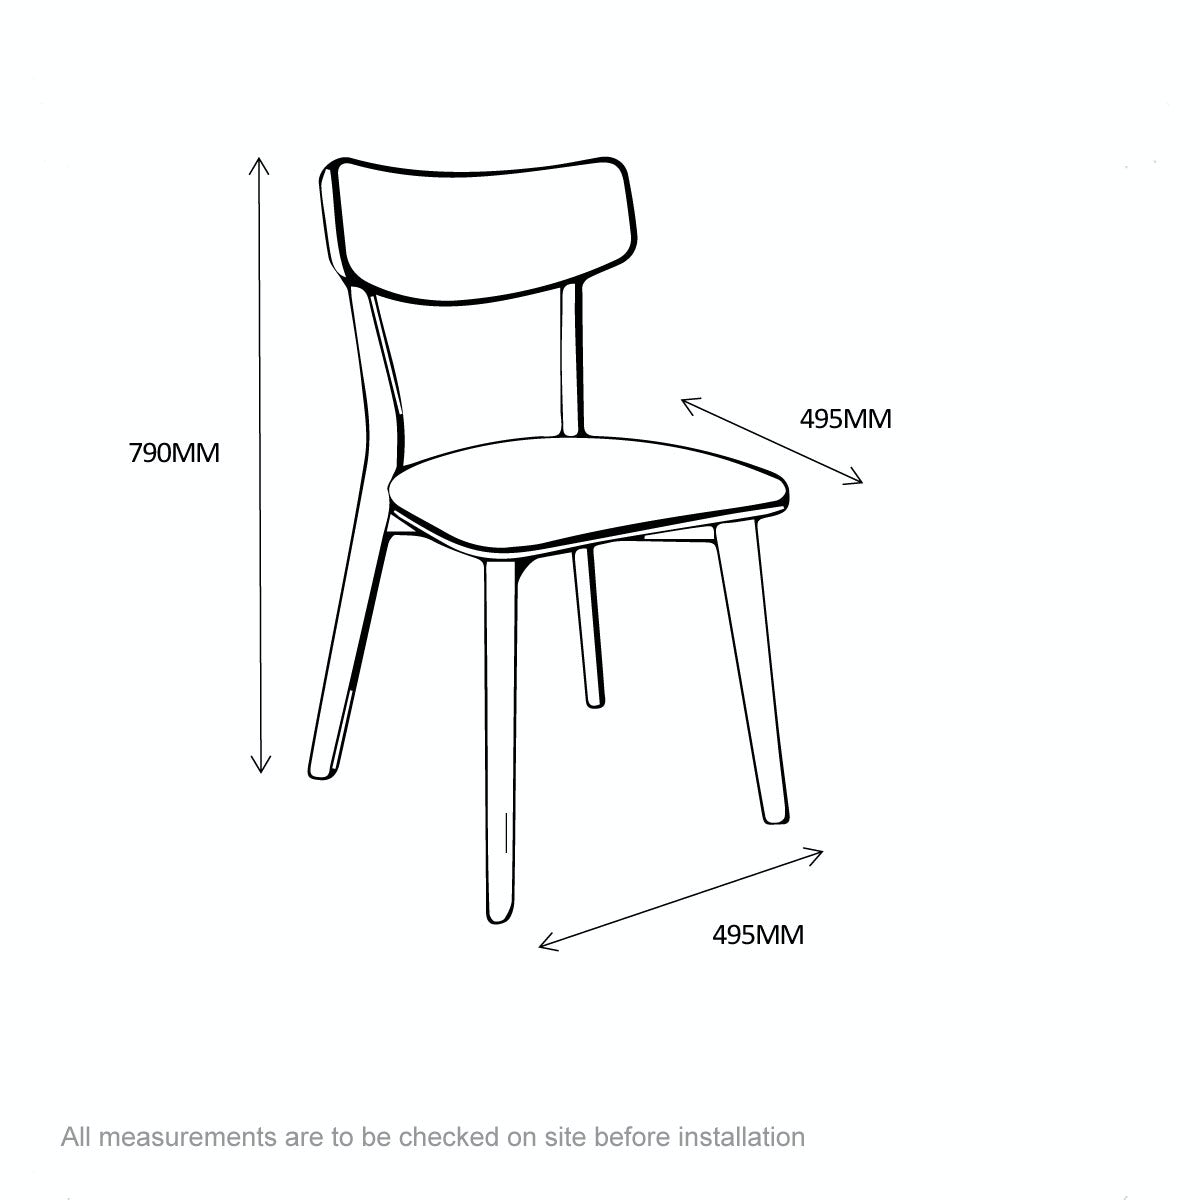 Dimensions for Ernest oak and green pair of dining chairs